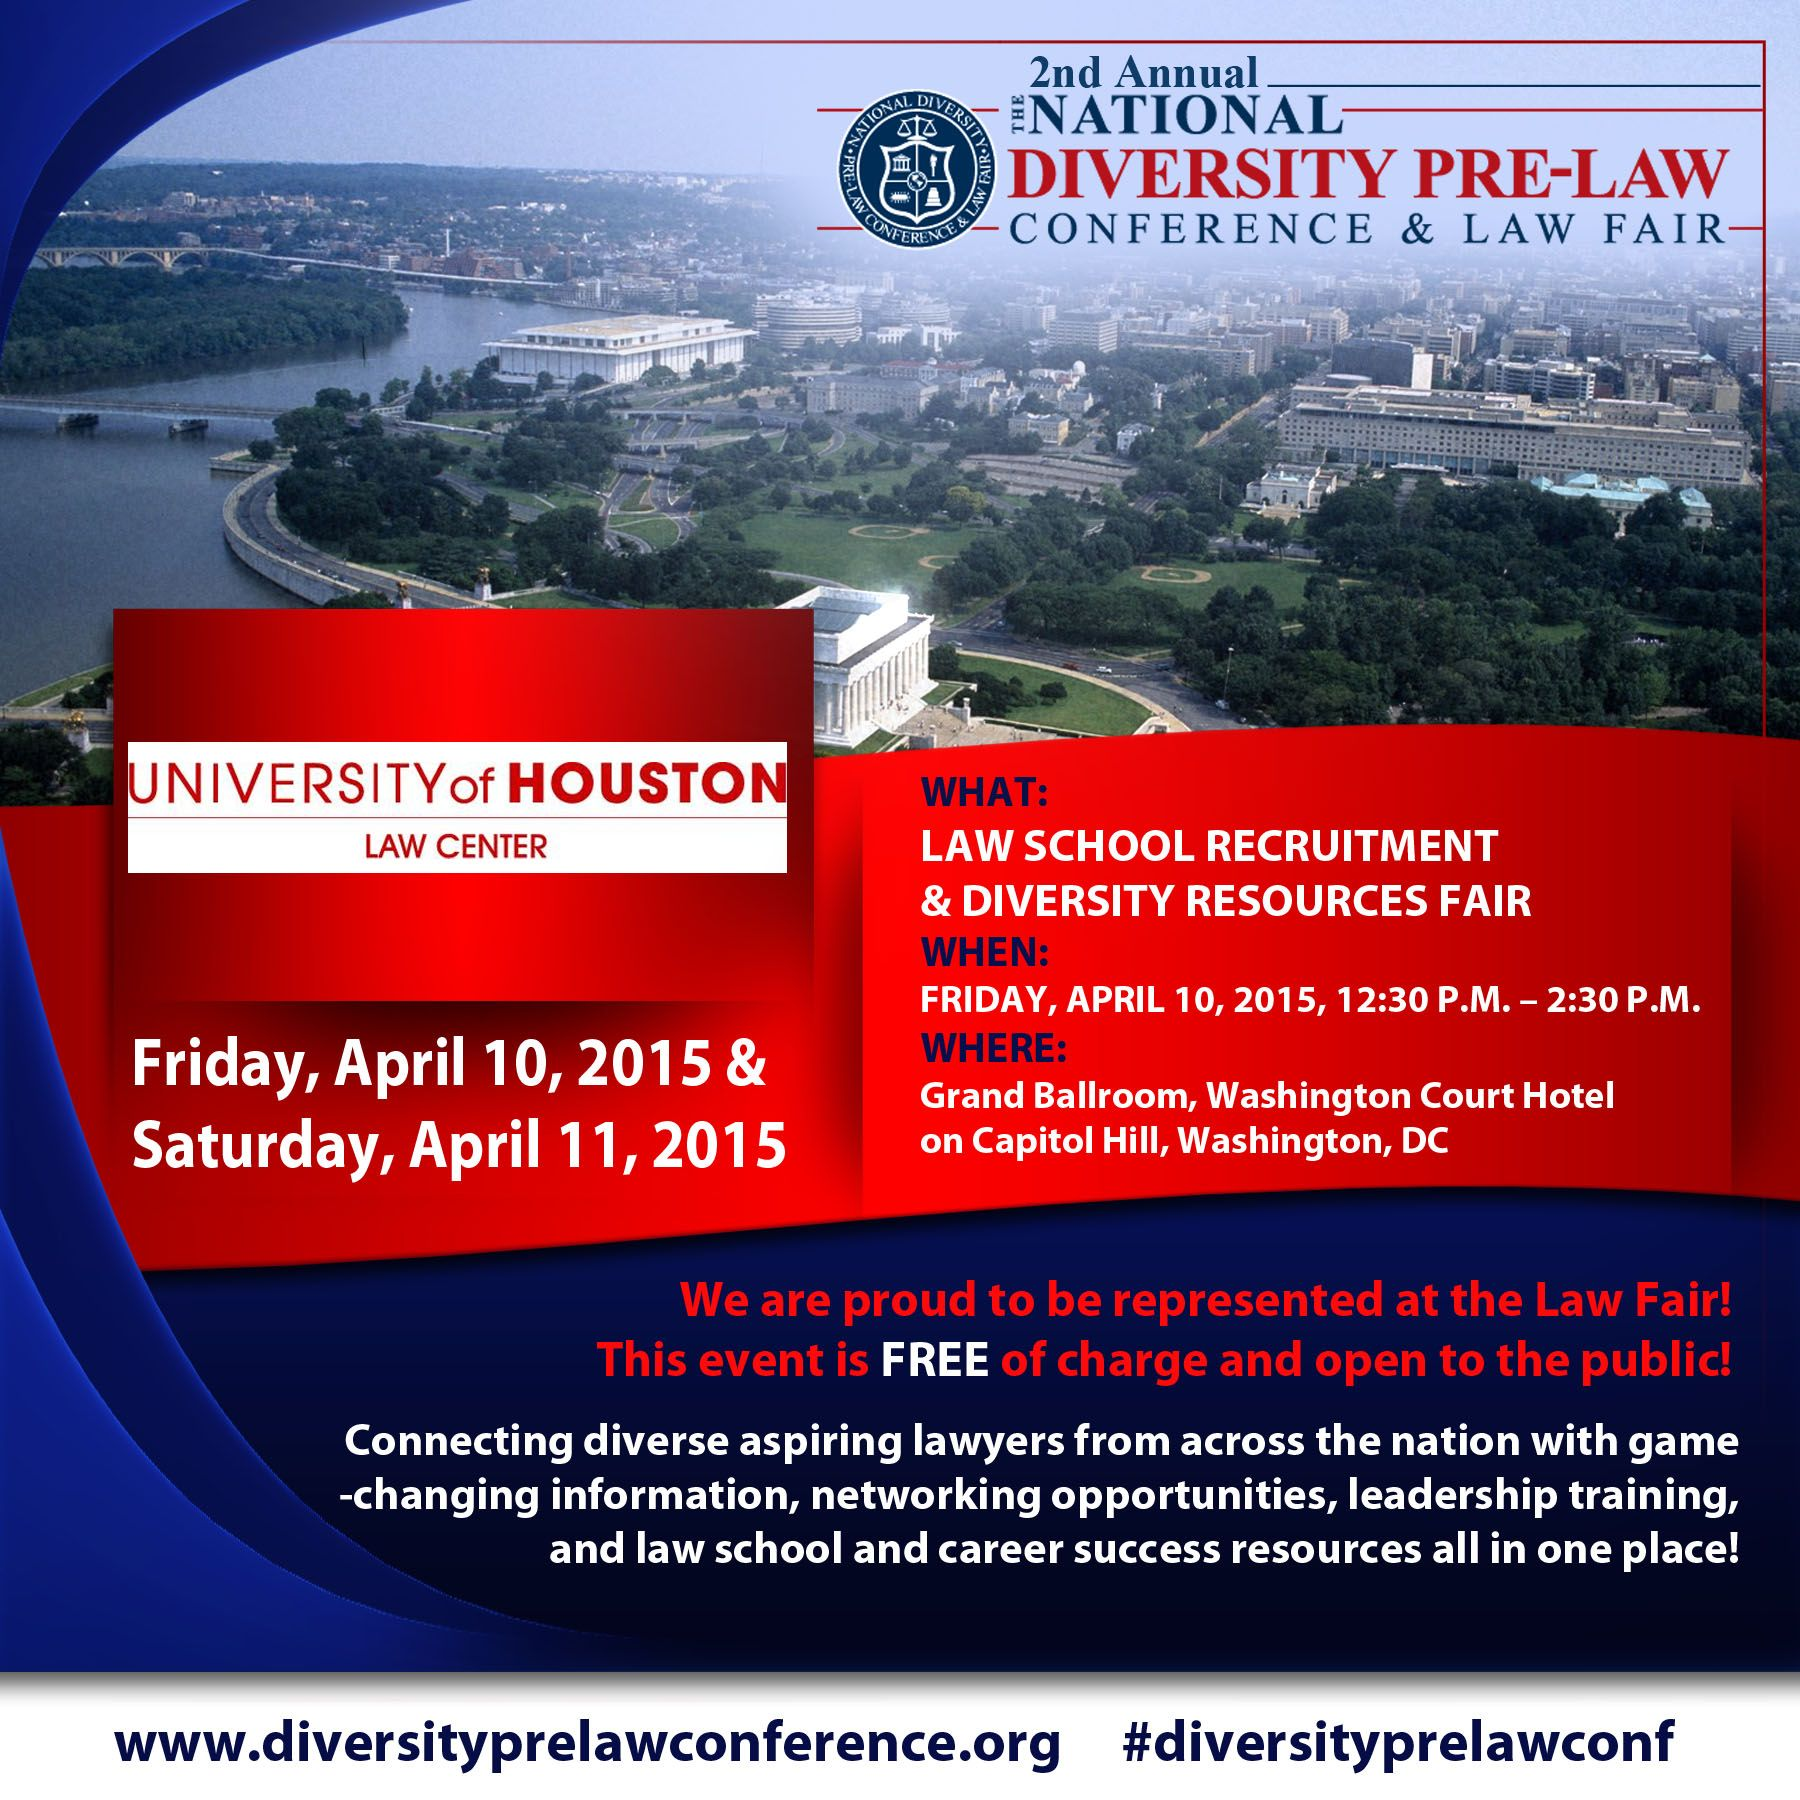 University of Houston Law Center, will be represented at this year's Law School Recruitment Fair at the 2nd Annual National Diversity Pre-Law Conference on Friday, April 10, 2015 from 12:30 p.m. until 2:30 p.m. at the Washington Court Hotel on Capitol Hill, Washington, DC.  Registration is FREE! We'd love to meet you there! www.diversityprelawconference.org | #DiversityPreLawConf